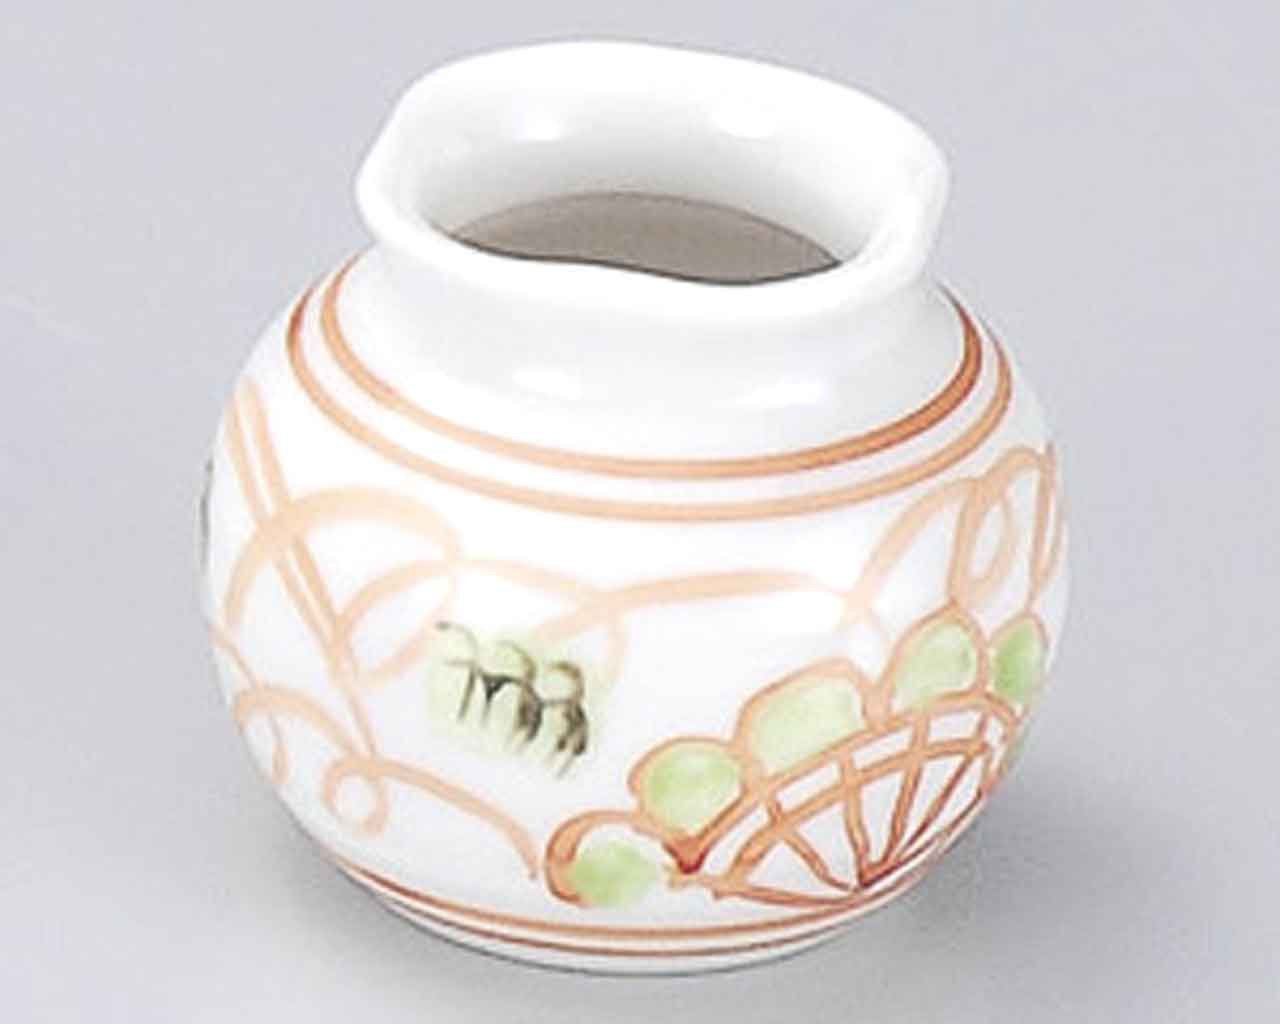 Tansai Flower 2inch Set of 5 Toothpick holders White porcelain Made in Japan